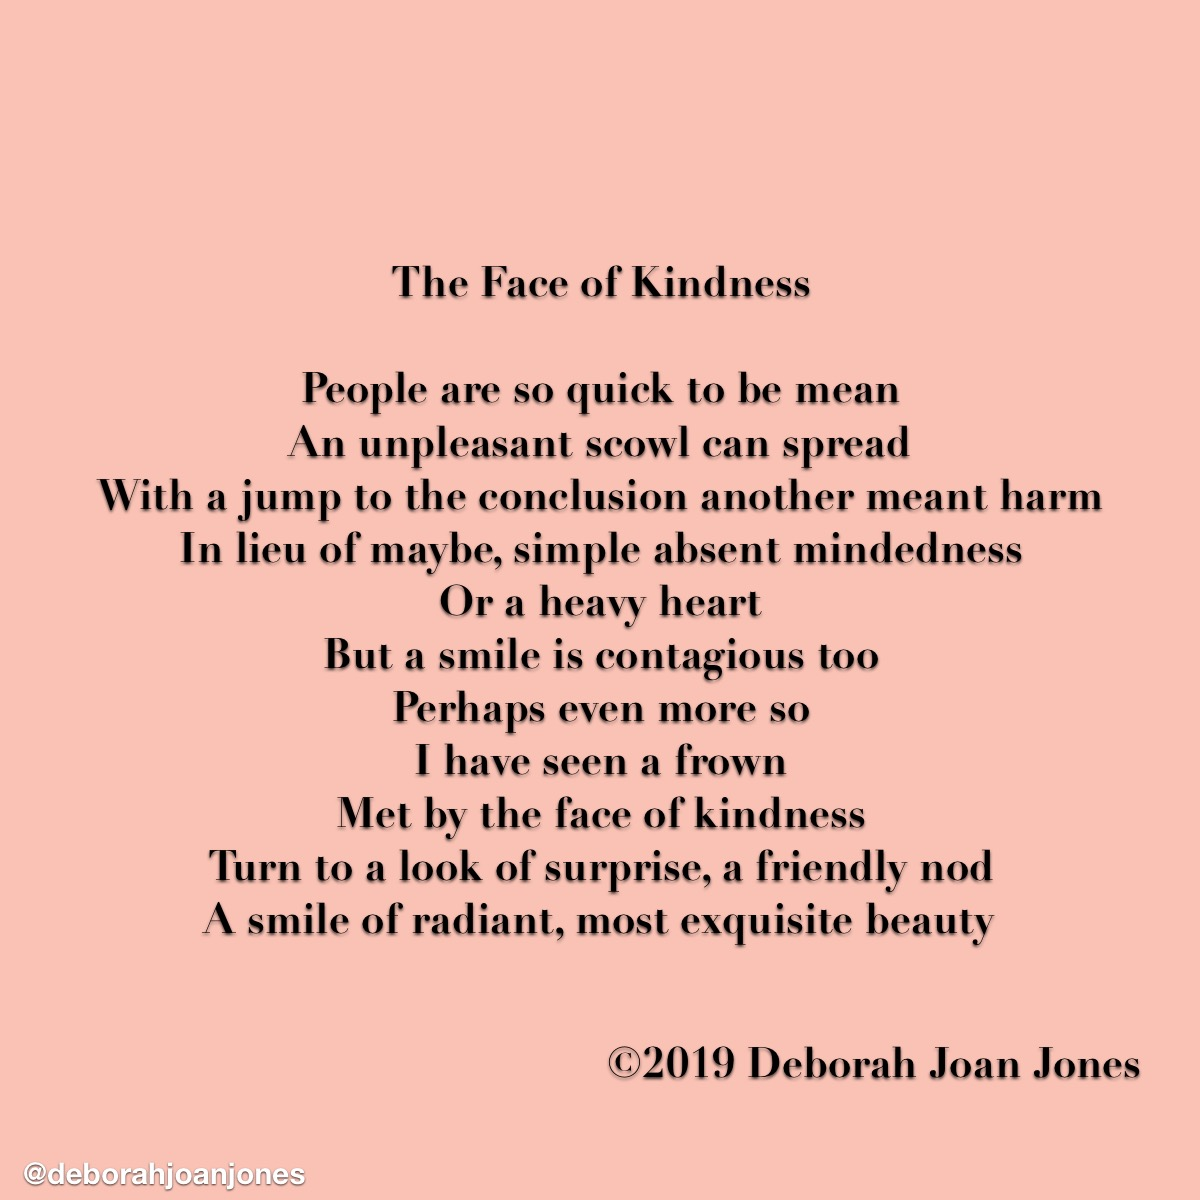 The Face of Kindness Deborah Joan Jones